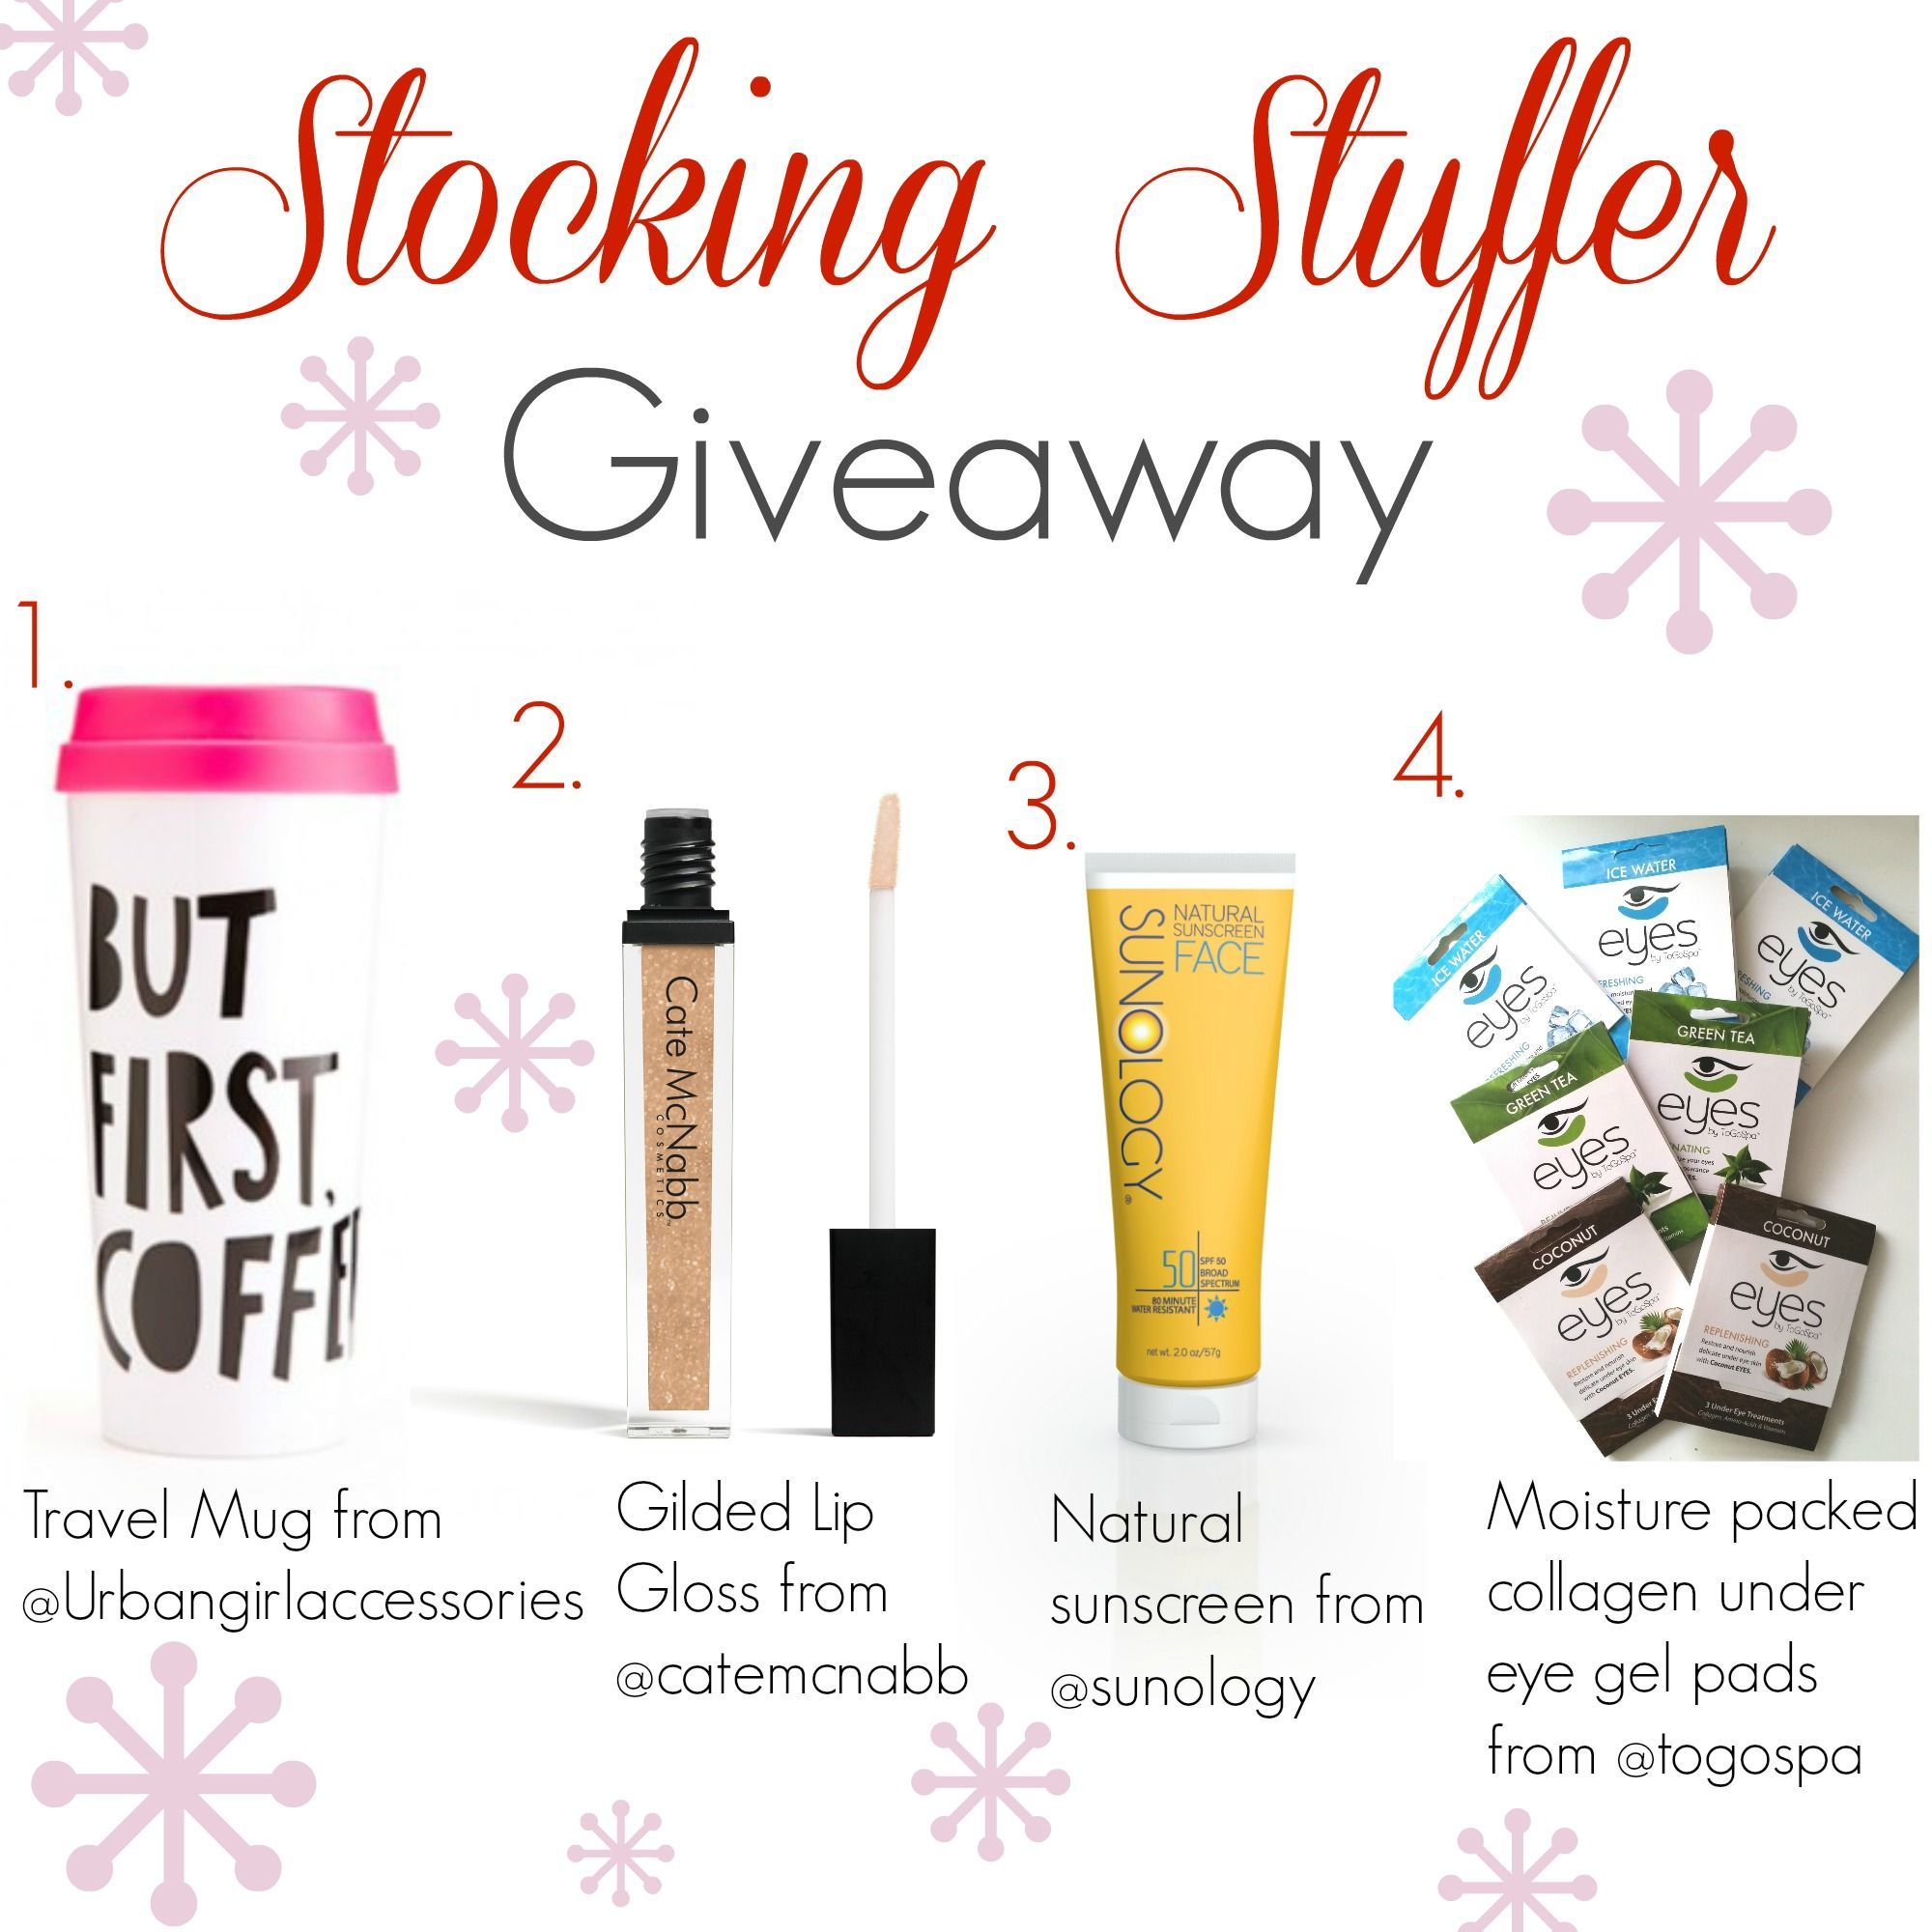 Stocking Stuffer Giveway #giveaway #instagramgiveaway #stockingstuffers http://thetribemagazine.com/stucking-stuffer-instagram-giveaway/